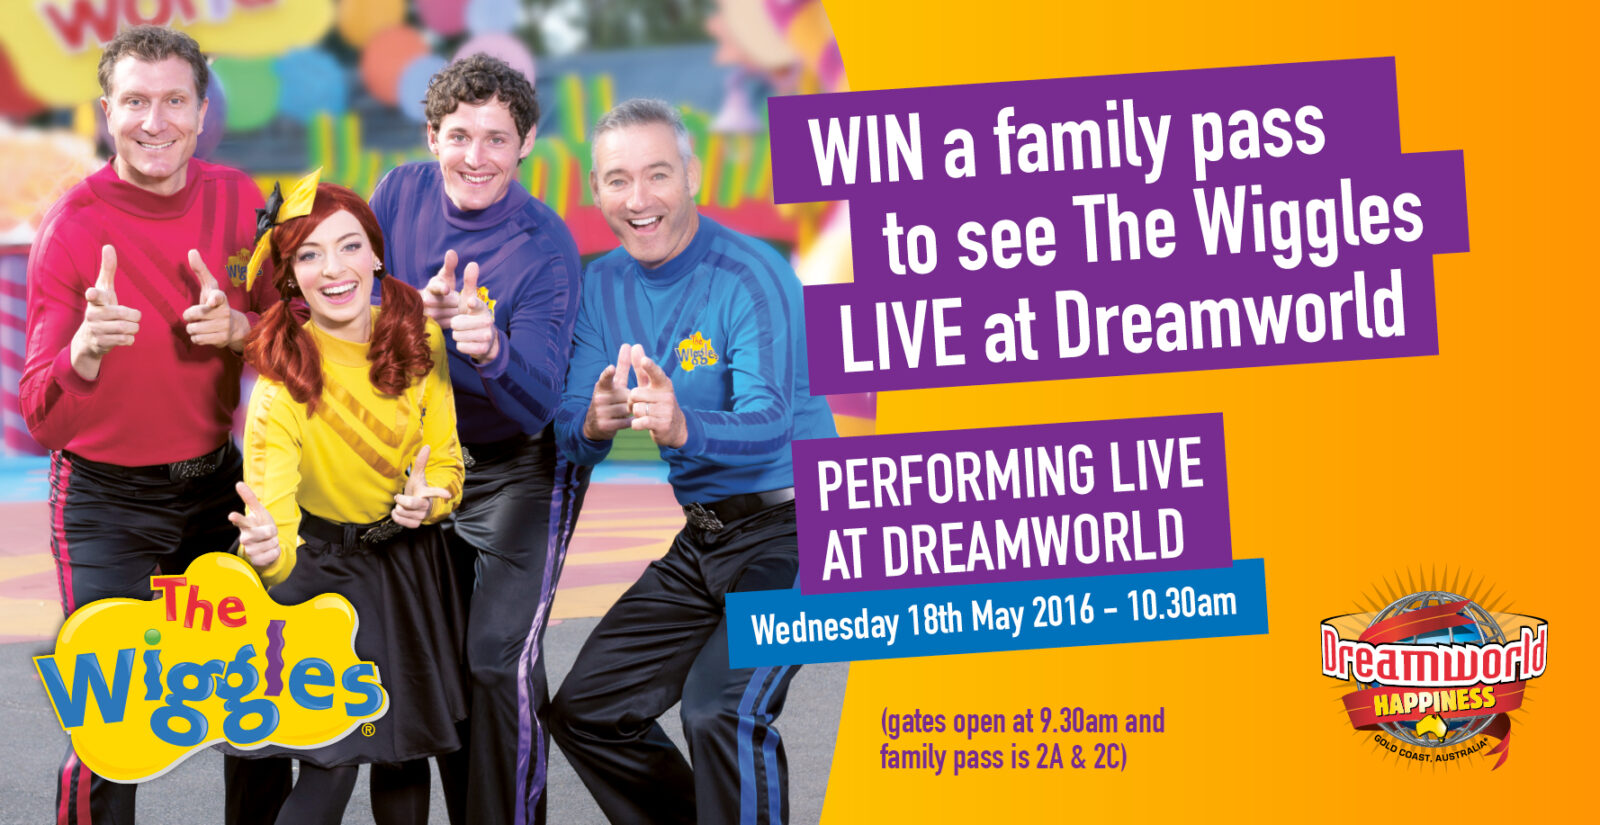 the wiggles performing live at dreamworld haven for families